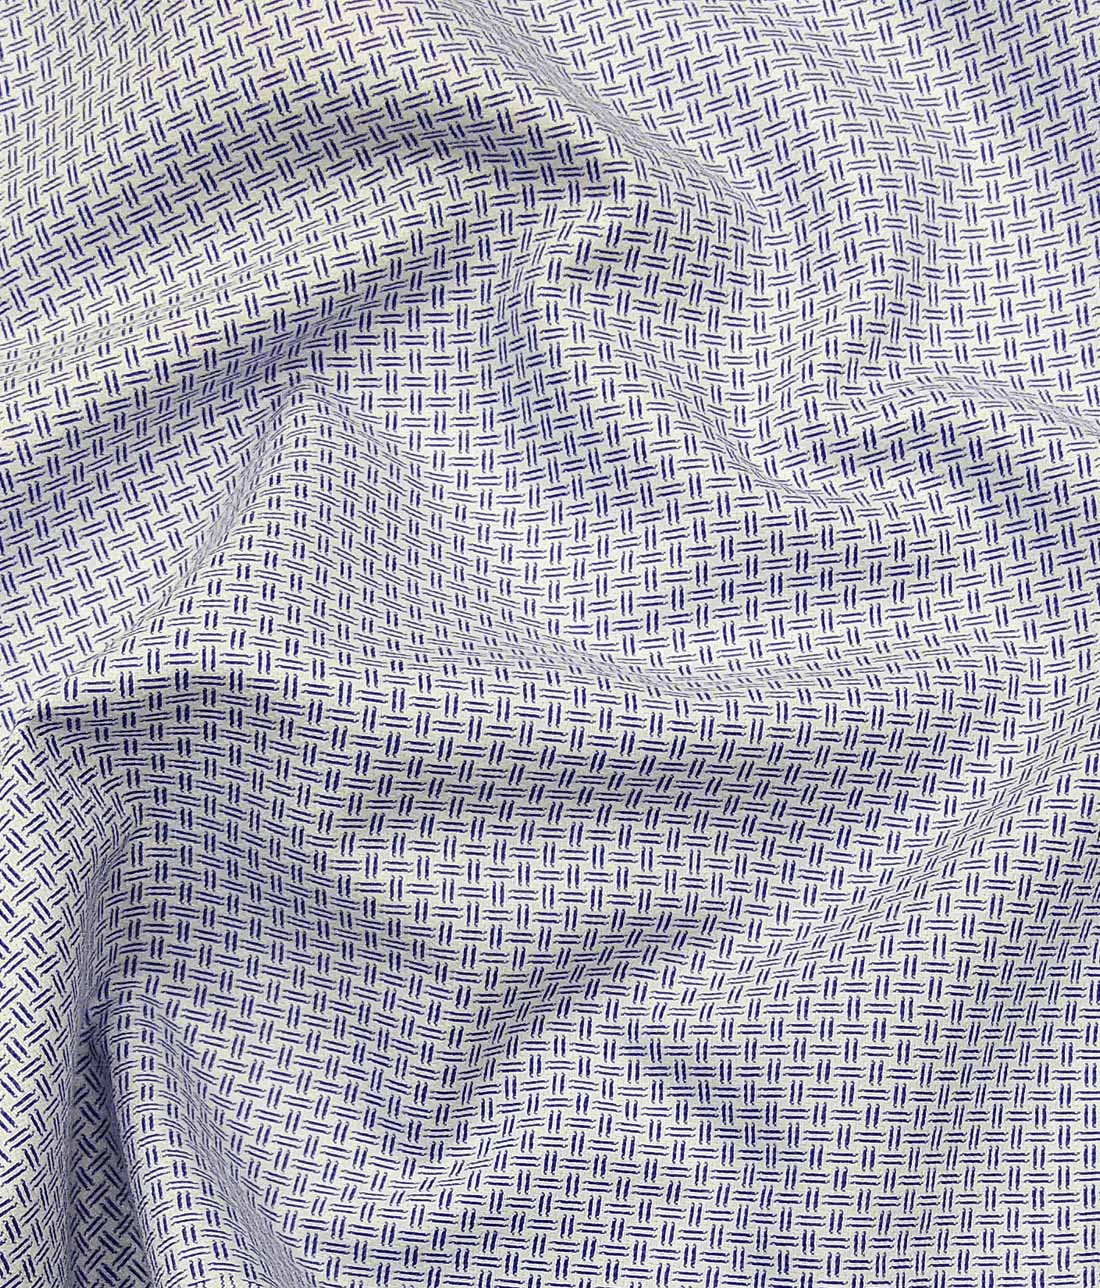 ed9c78cfe Combo of Raymond Dark Blue Broad Checks Trouser Fabric With Exquisite White  Cotton Blend Structured Shirt ...